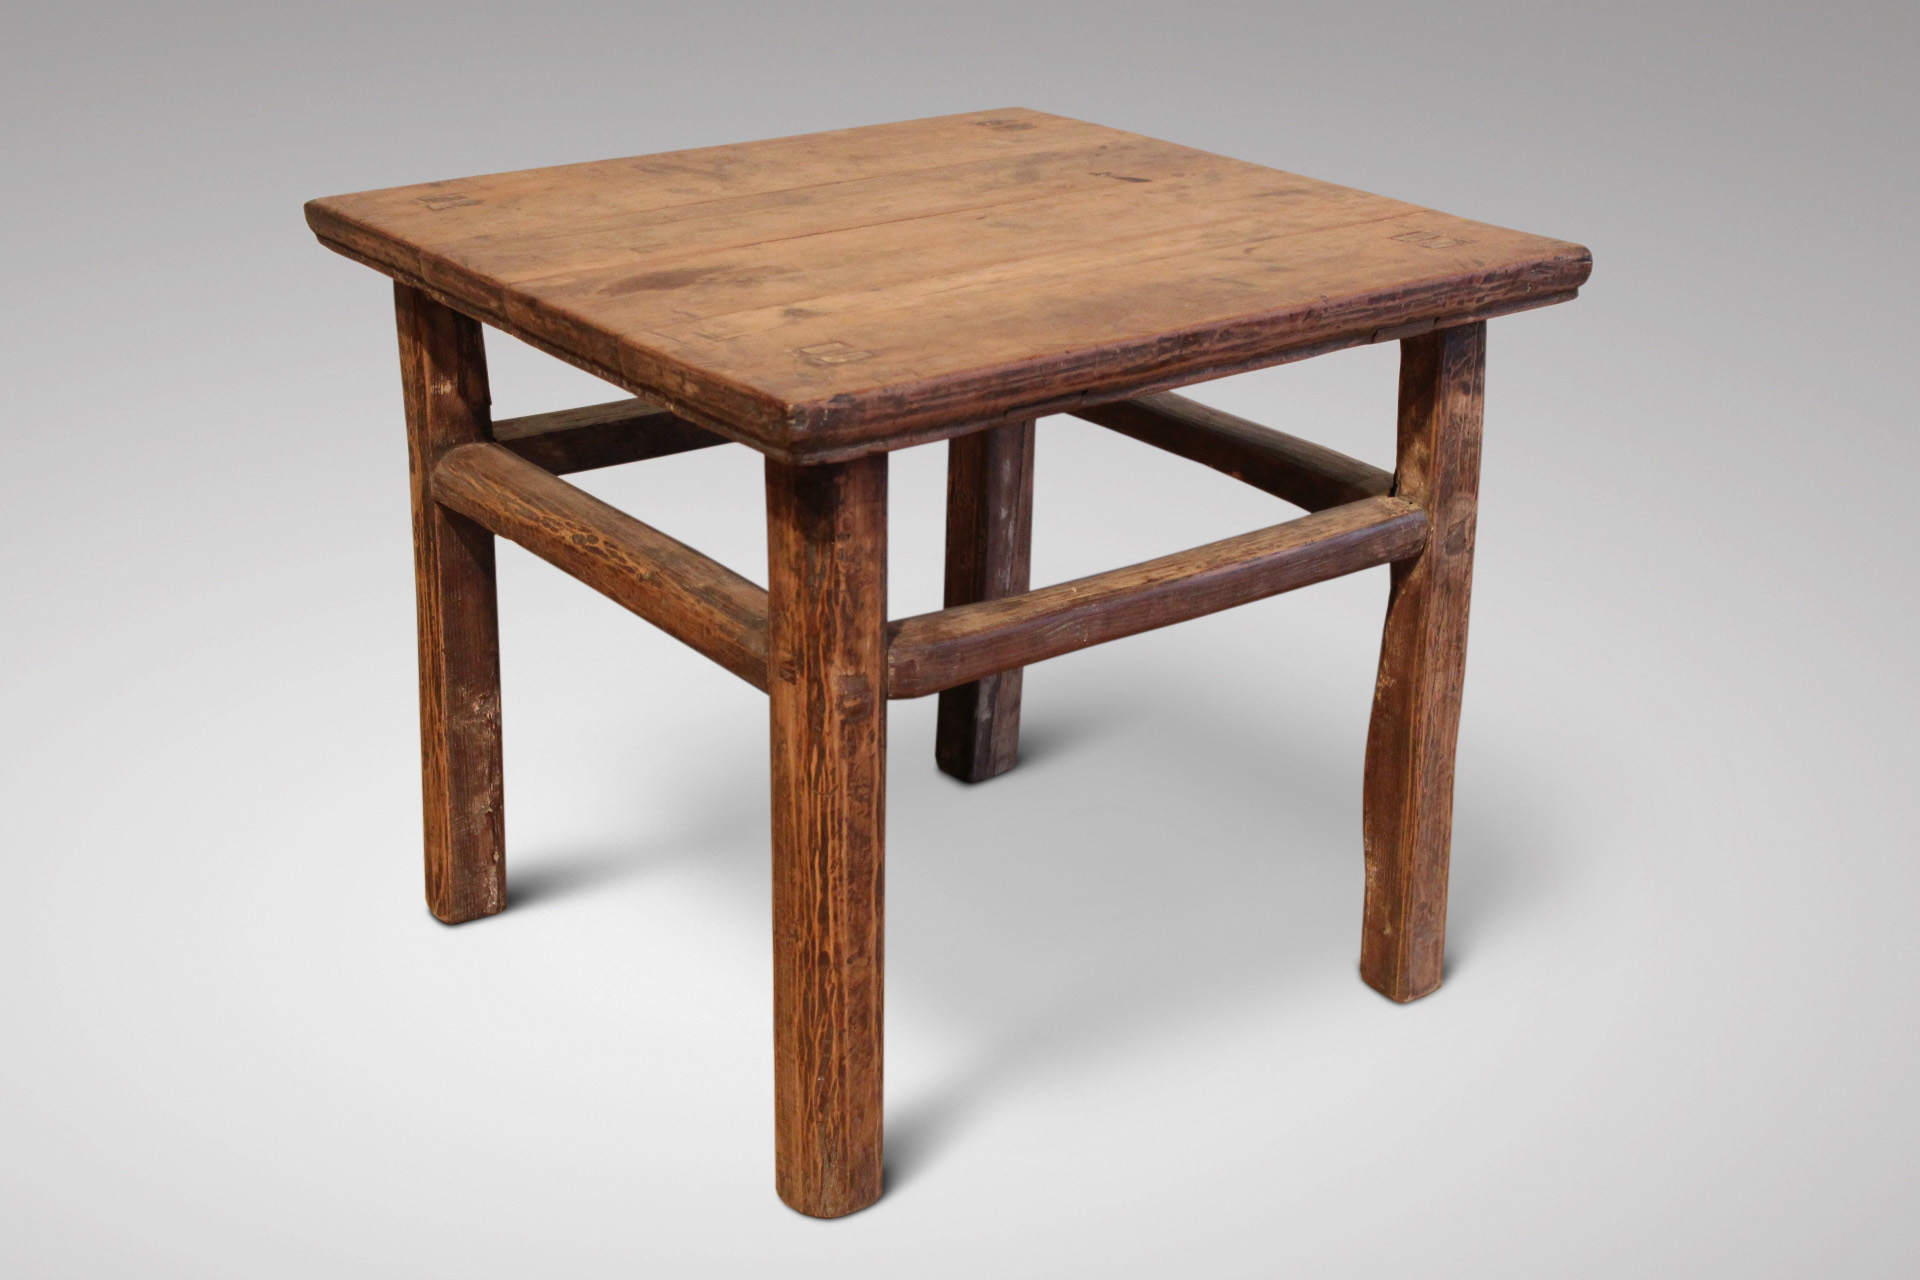 19C LOW TABLE